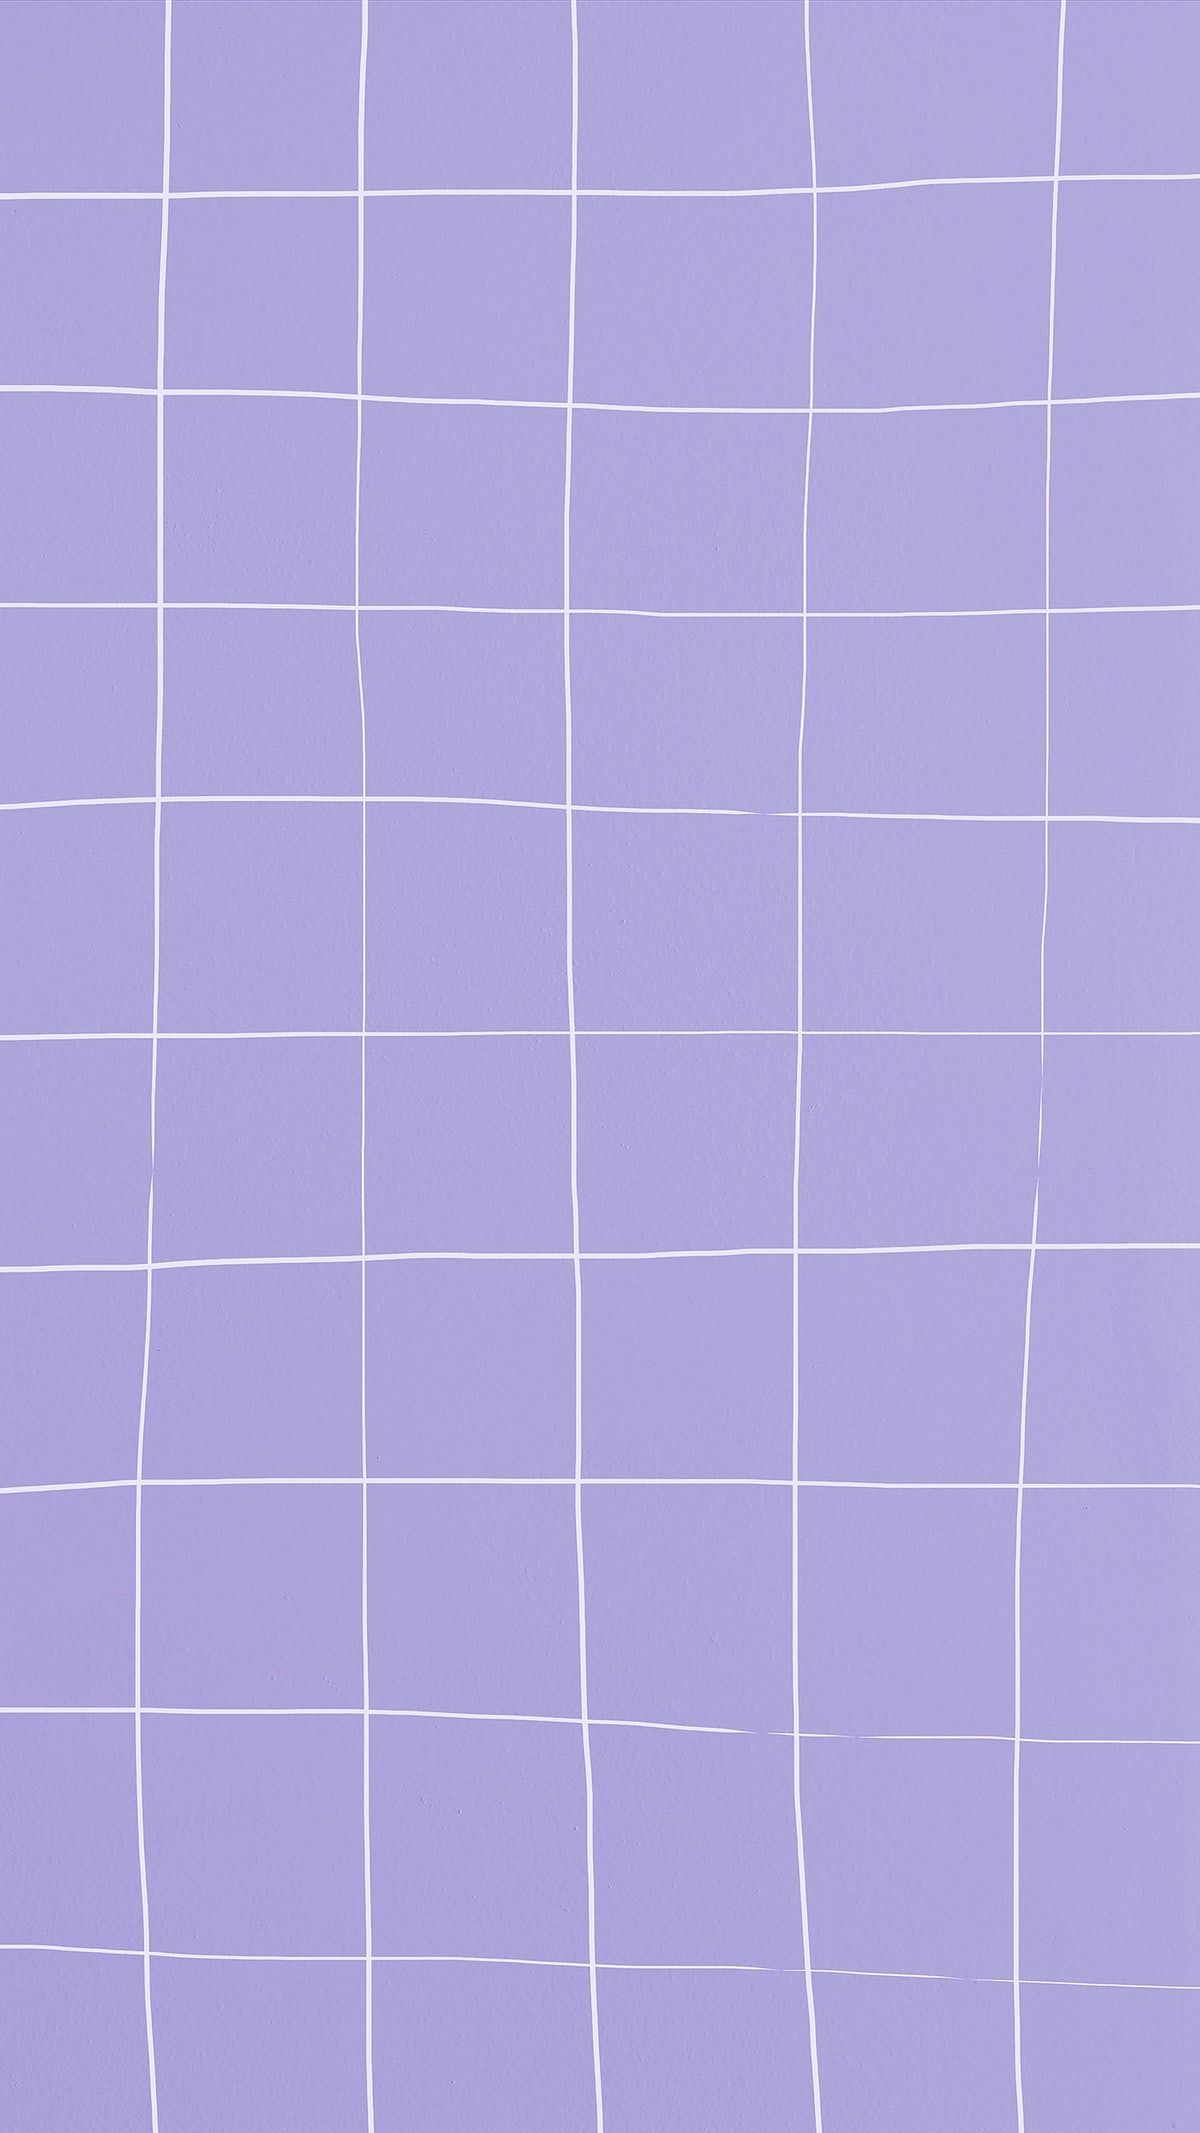 Download free illustration of Lilac tile wall texture background distorted